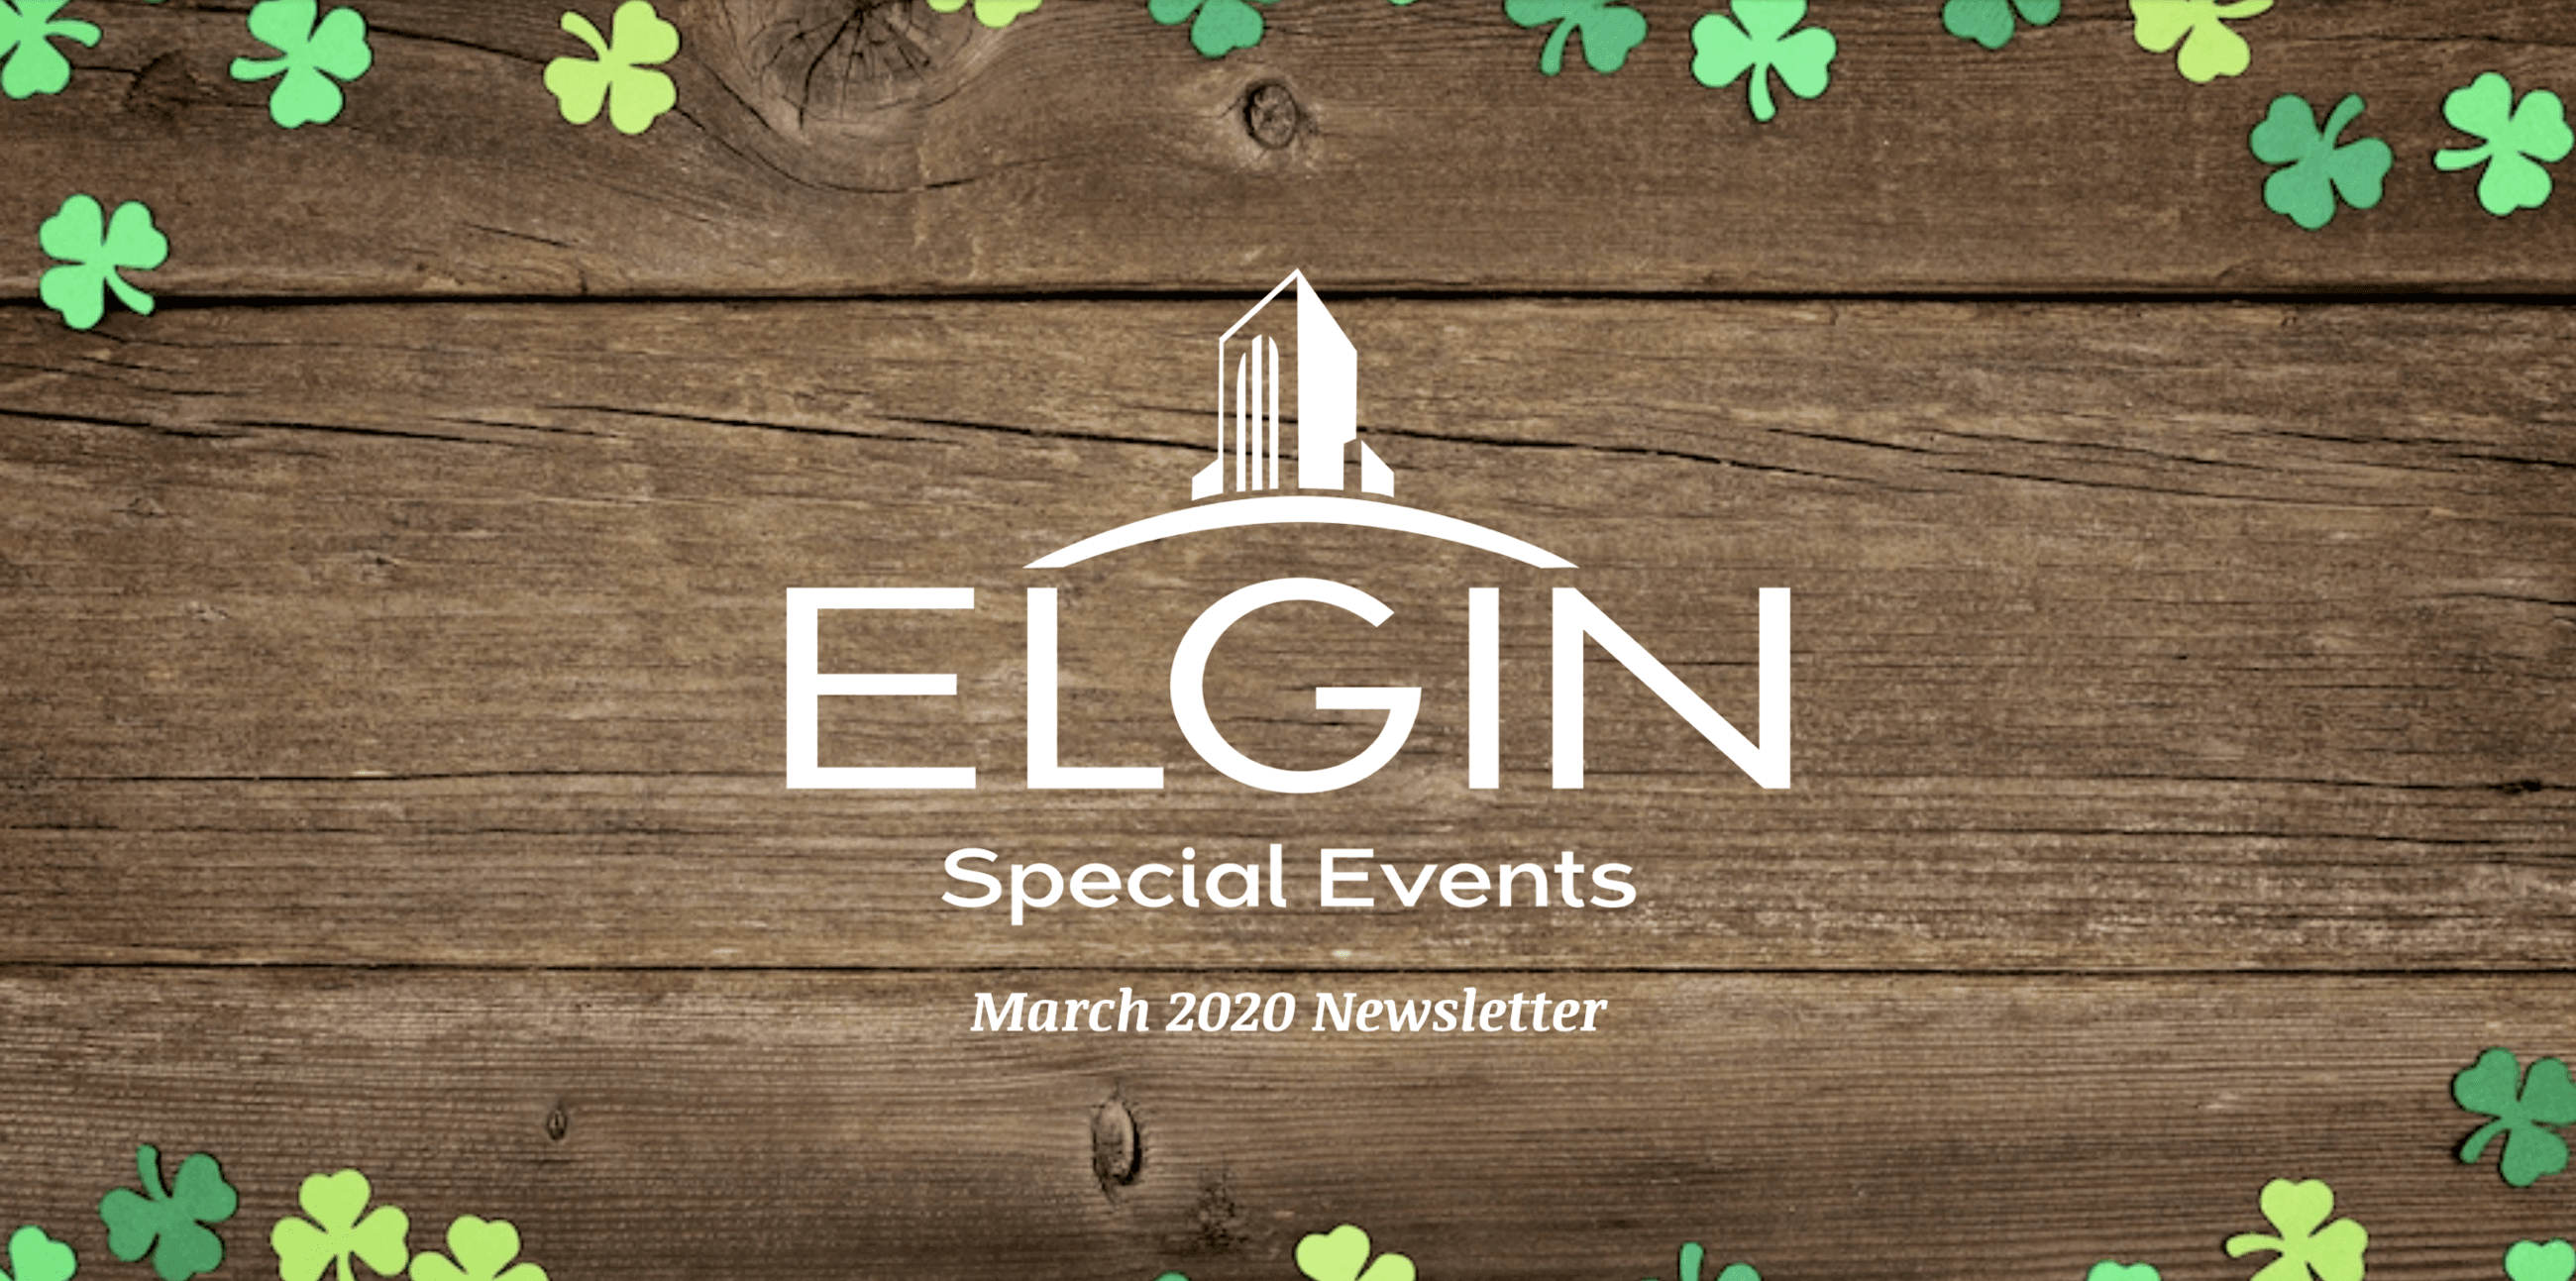 March Special Events Newsletter image. wooden image with logo and clovers